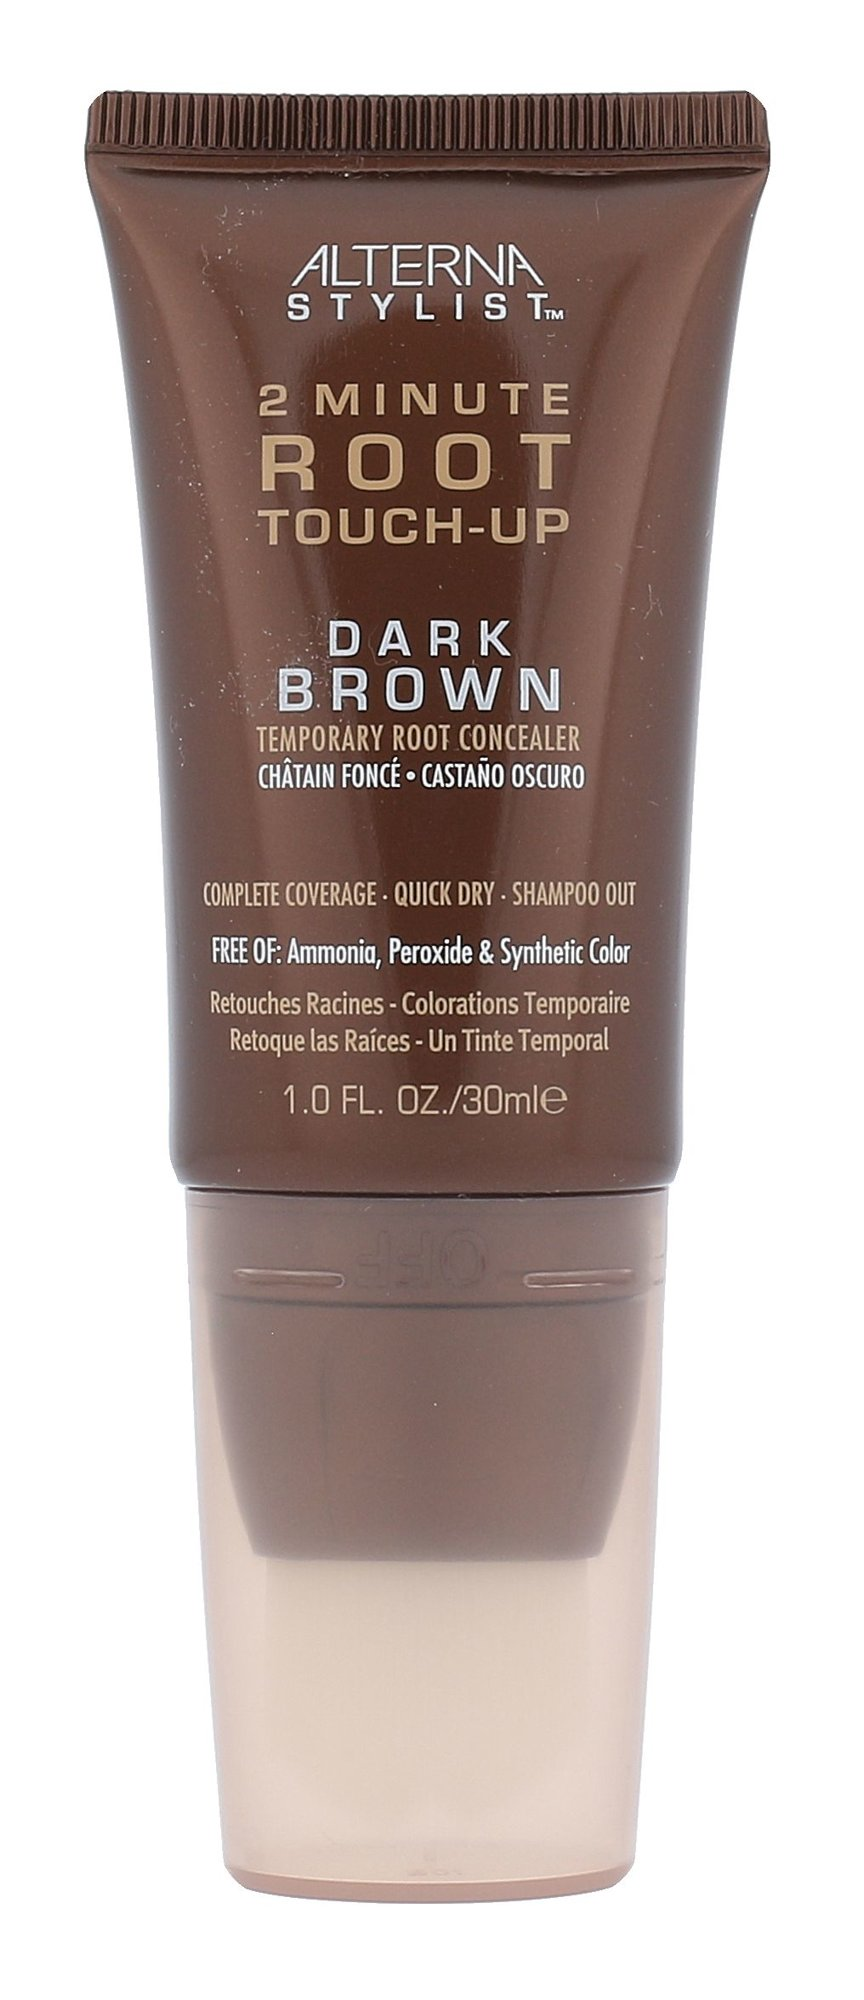 Alterna Stylist Cosmetic 30ml Dark Brown 2 Minute Root Touch-Up